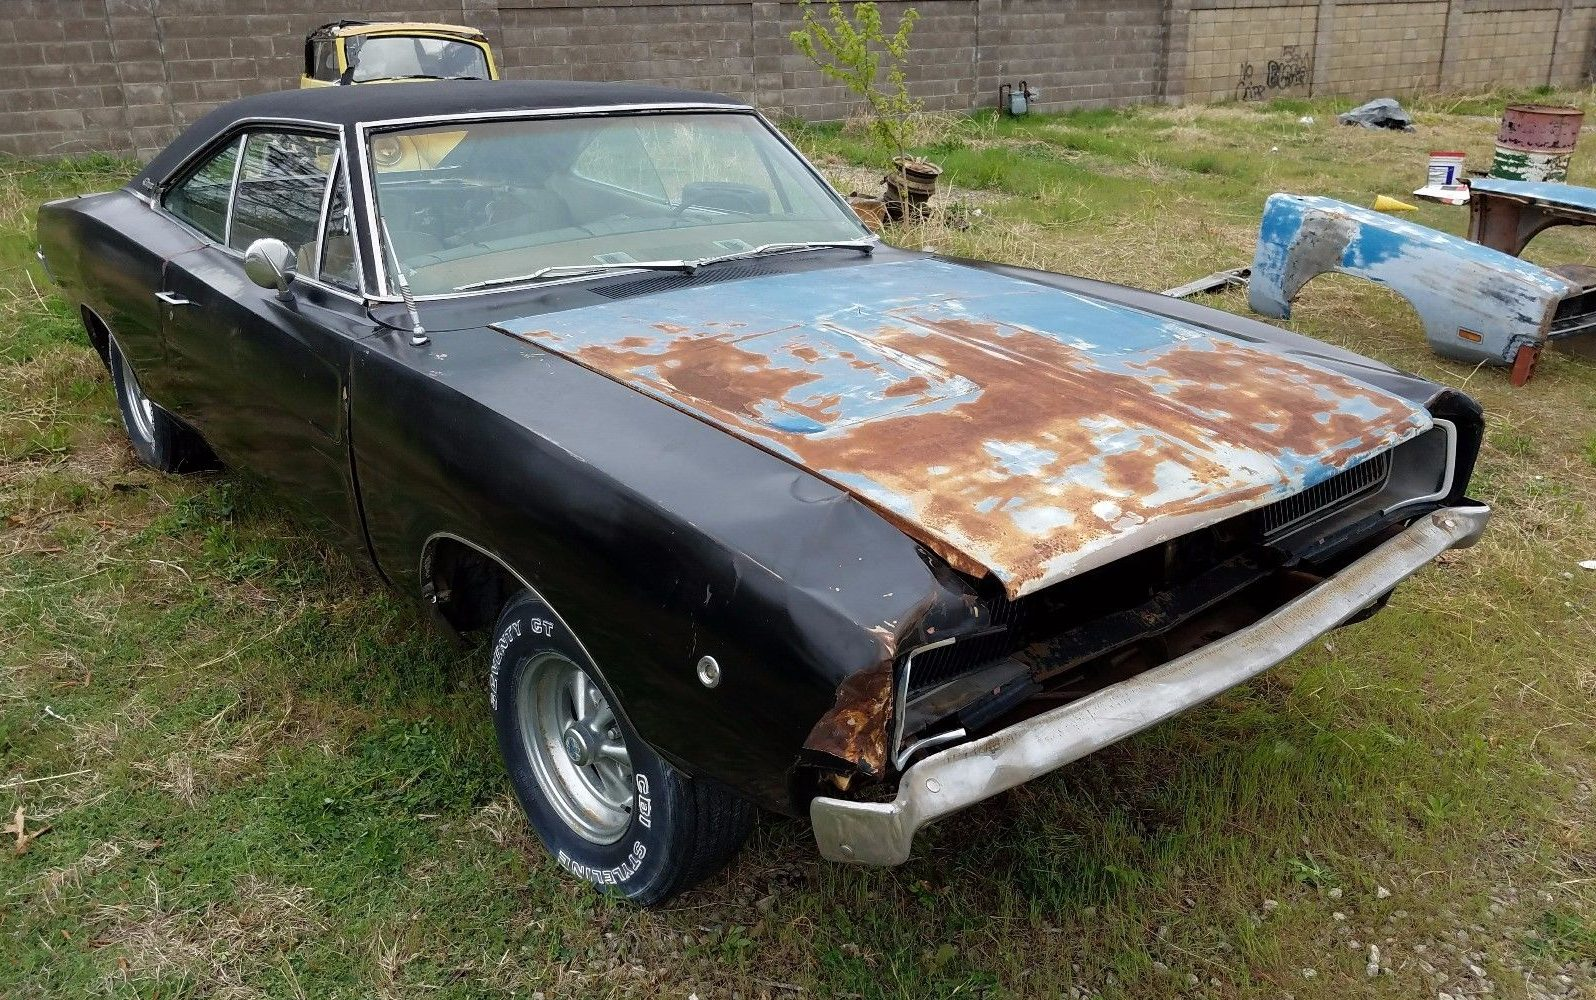 Column-Shift 1968 Dodge Charger Project